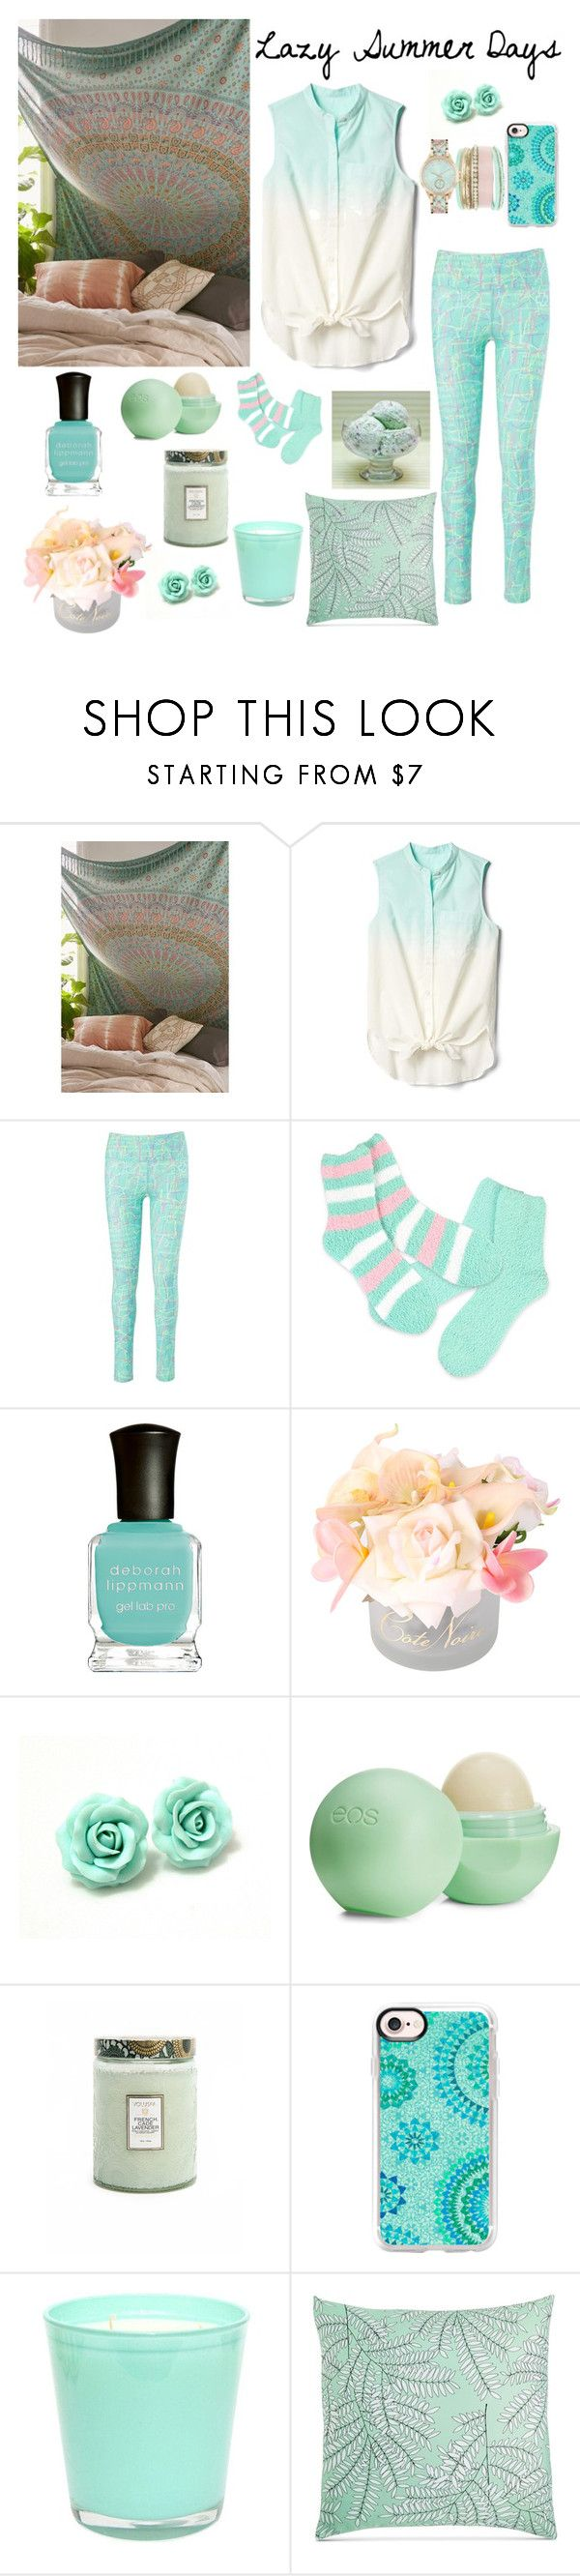 """""""Lazy Summer Days"""" by curly3996 ❤ liked on Polyvore featuring Urban Outfitters, Gap, So iLL, Deborah Lippmann, Côte Noire, Eos, Voluspa, Casetify, Charter Club and Jessica Carlyle"""